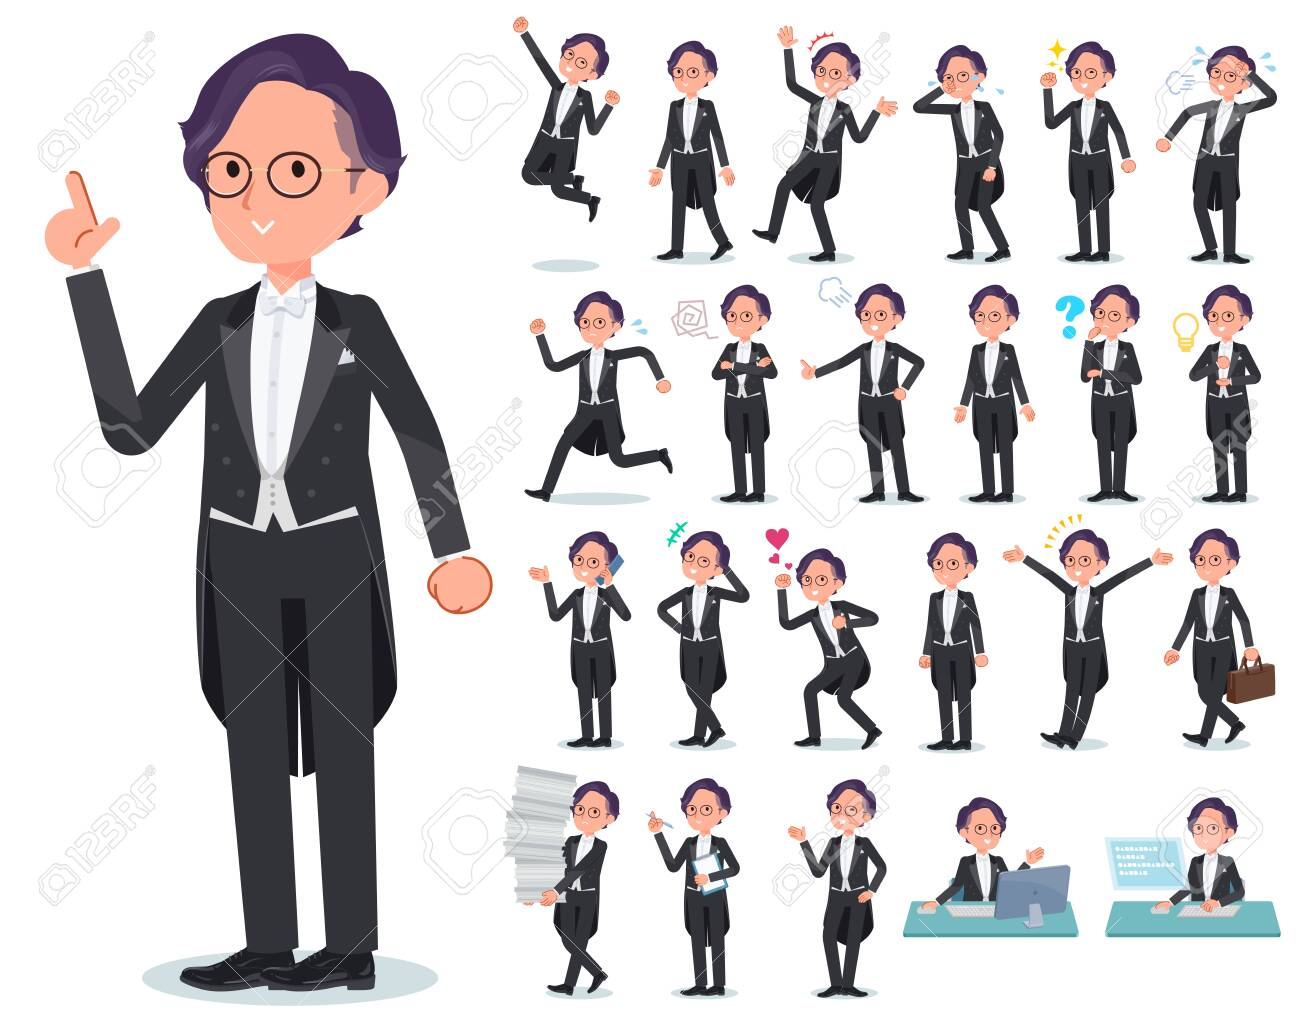 A set of men wearing a tail-coat with who express various emotions.There are actions related to workplaces and personal computers.It's vector art so it's easy to edit. - 126645737